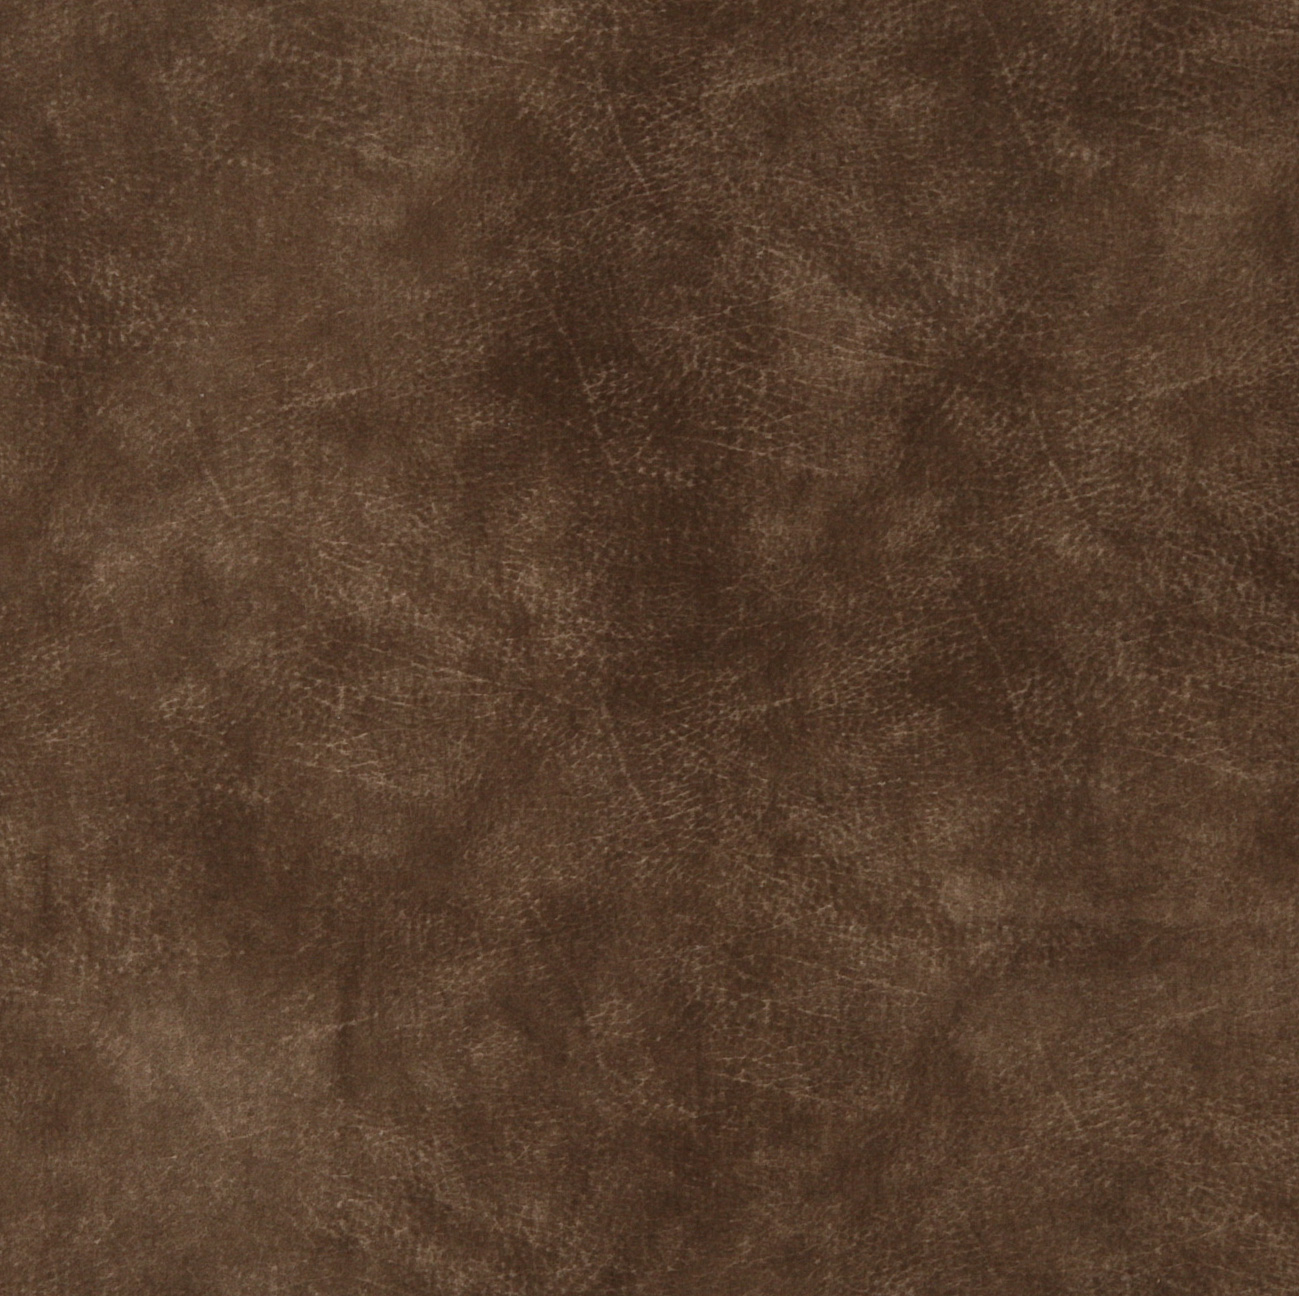 stain proof sofa fabric abbie berry moss brown animal hide look soft microfiber upholstery